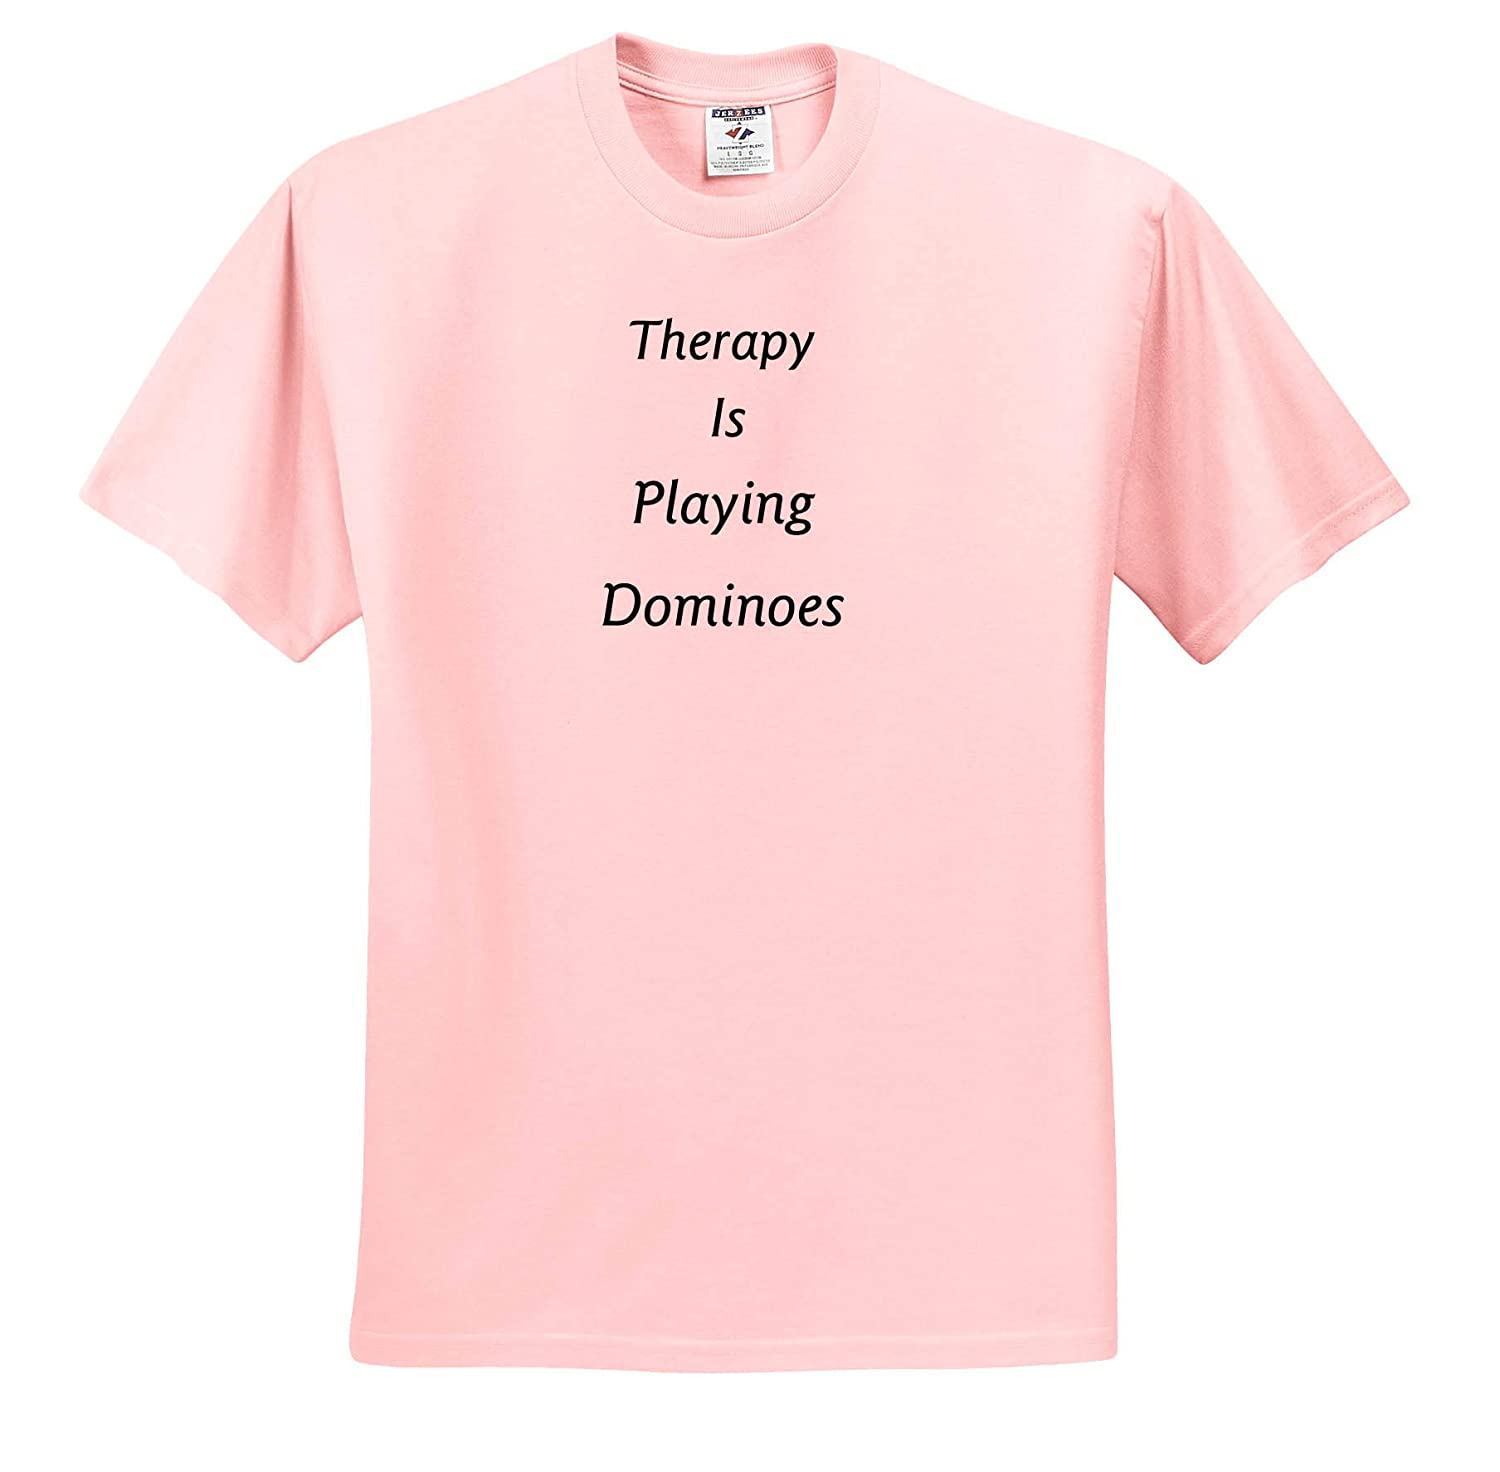 Therapy is Image of Therapy is Playing Dominoes in Bold Words Adult T-Shirt XL 3dRose Lens Art by Florene ts/_311376